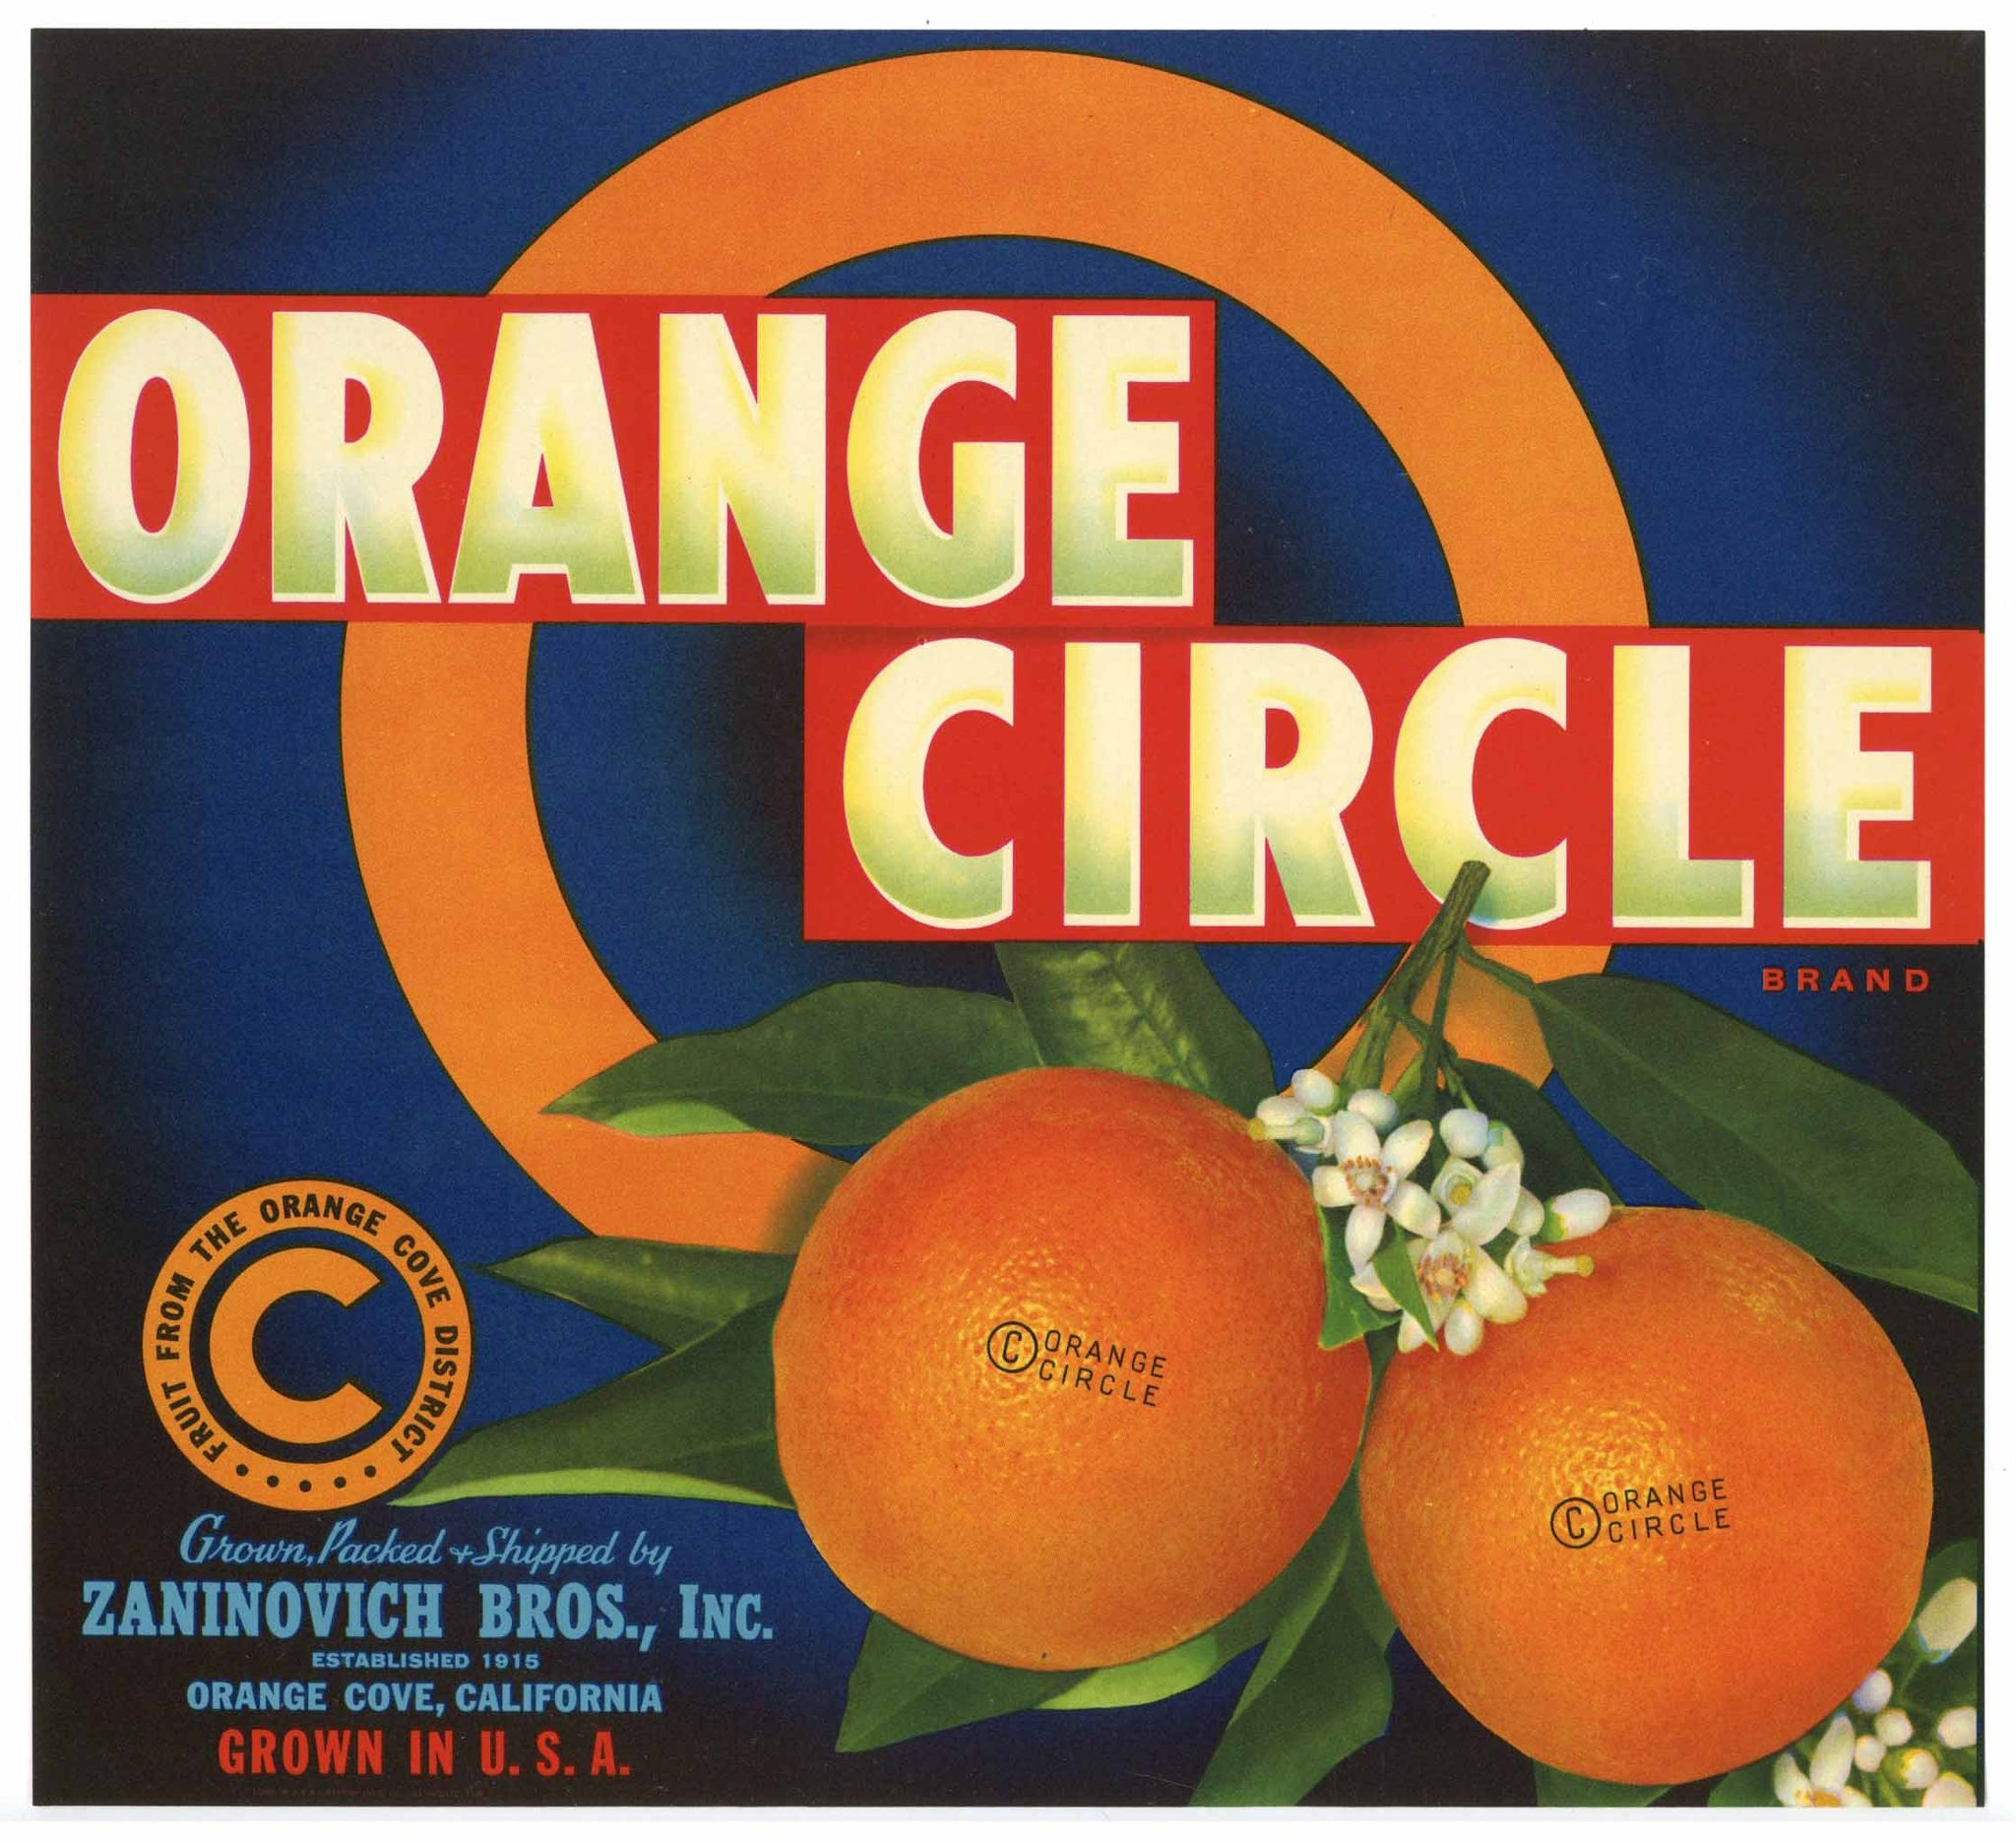 Orange Circle Brand Vintage Orange Crate Label